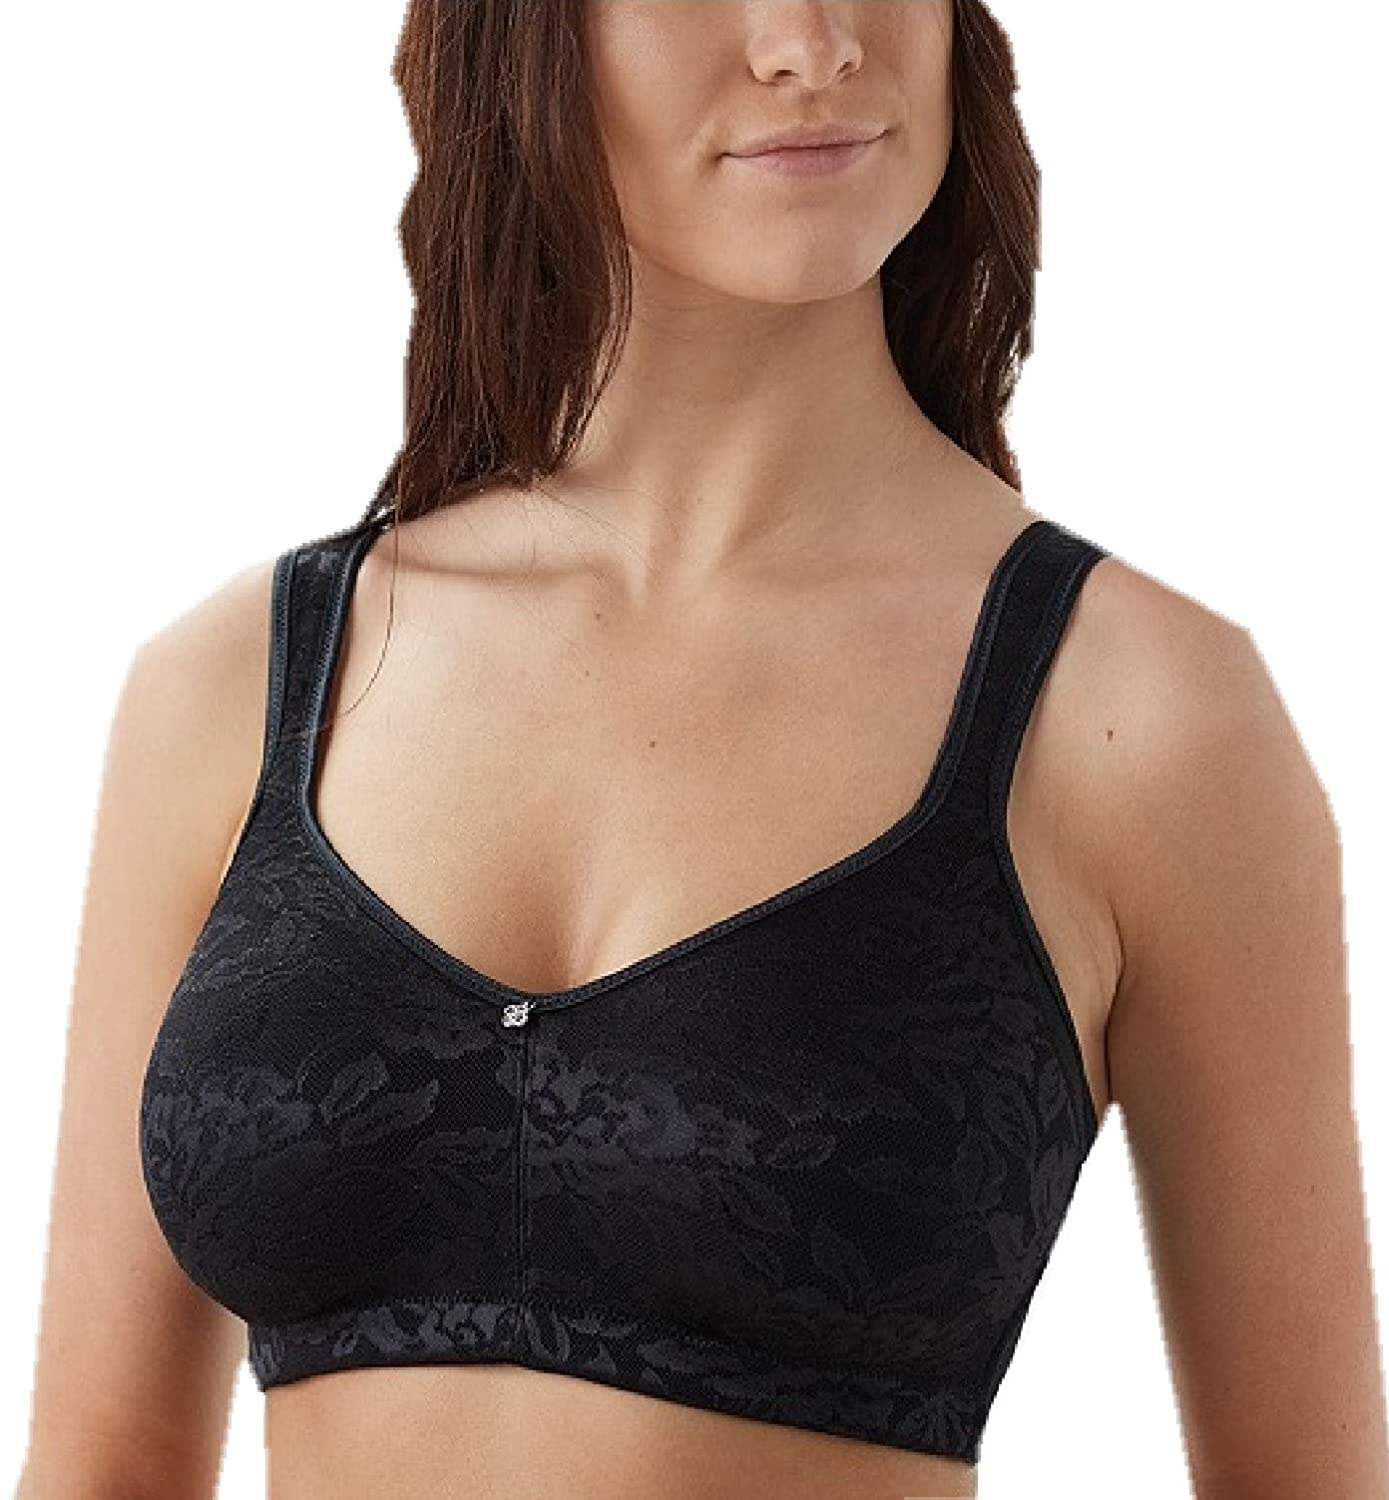 0a9d091a6 Breezies Seamless Floral Side Smoothing Unlined Wirefree Bra at Amazon  Women s Clothing store